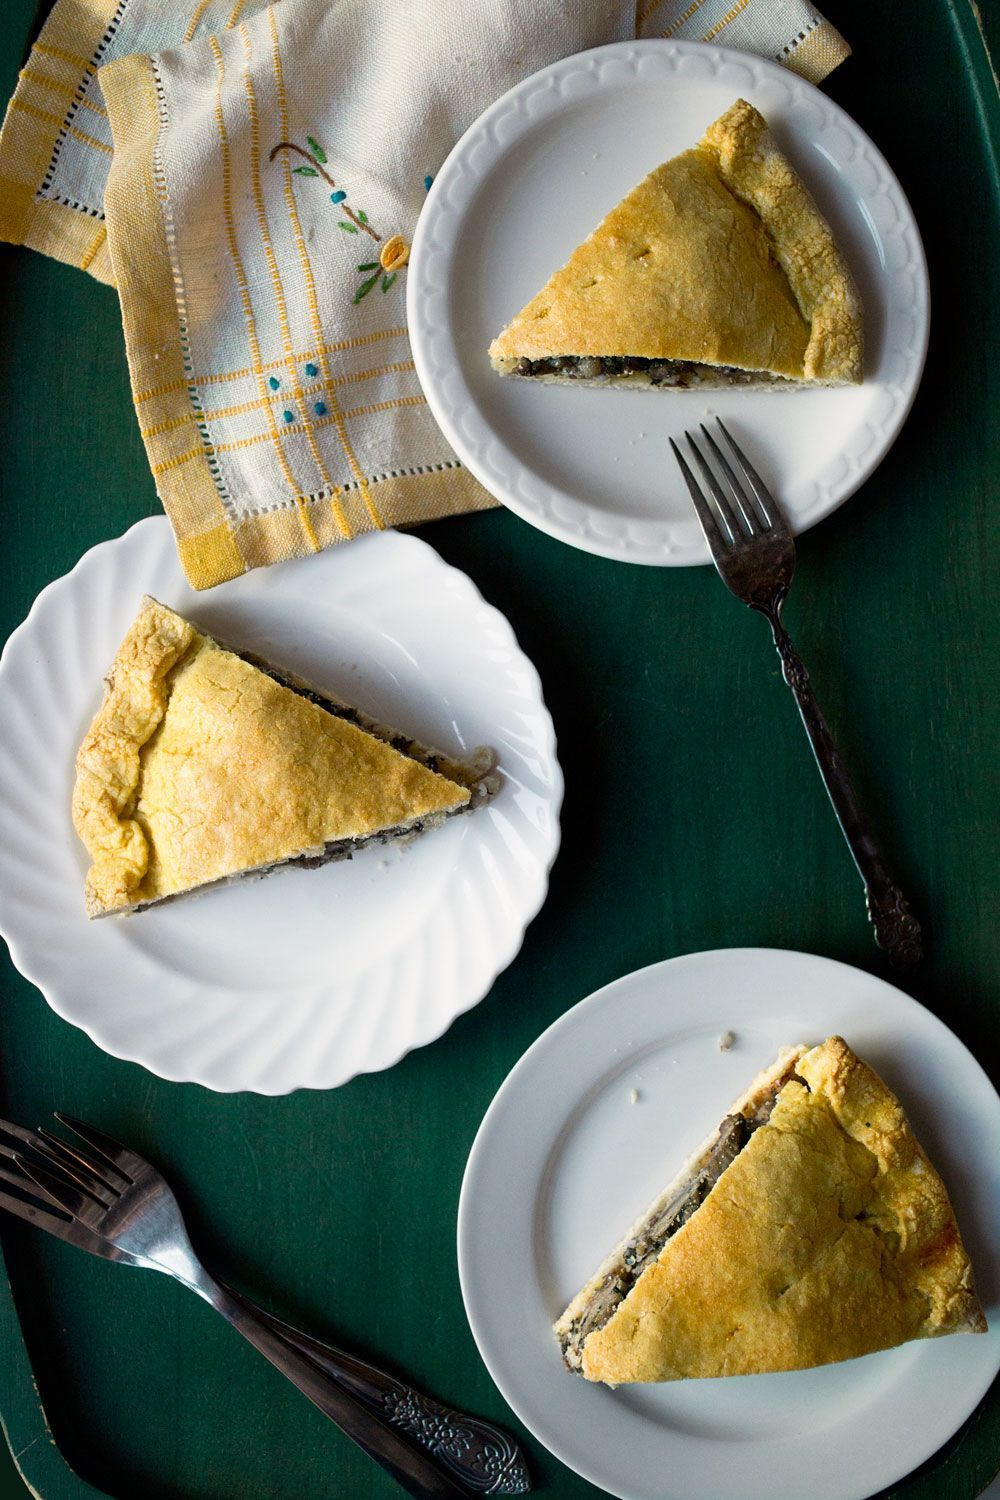 Sicilian Easter Lamb Pie: 11 Easter Recipes from Around the World | www.TheHungr...    Sicilian Easter Lamb Pie: 11 Easter Recipes from Around the World | www.TheHungryTrav... #blog #Easter #Hungry #recipes #Traveler #Easter #Lamb #Pie #Recipes #Sicilian